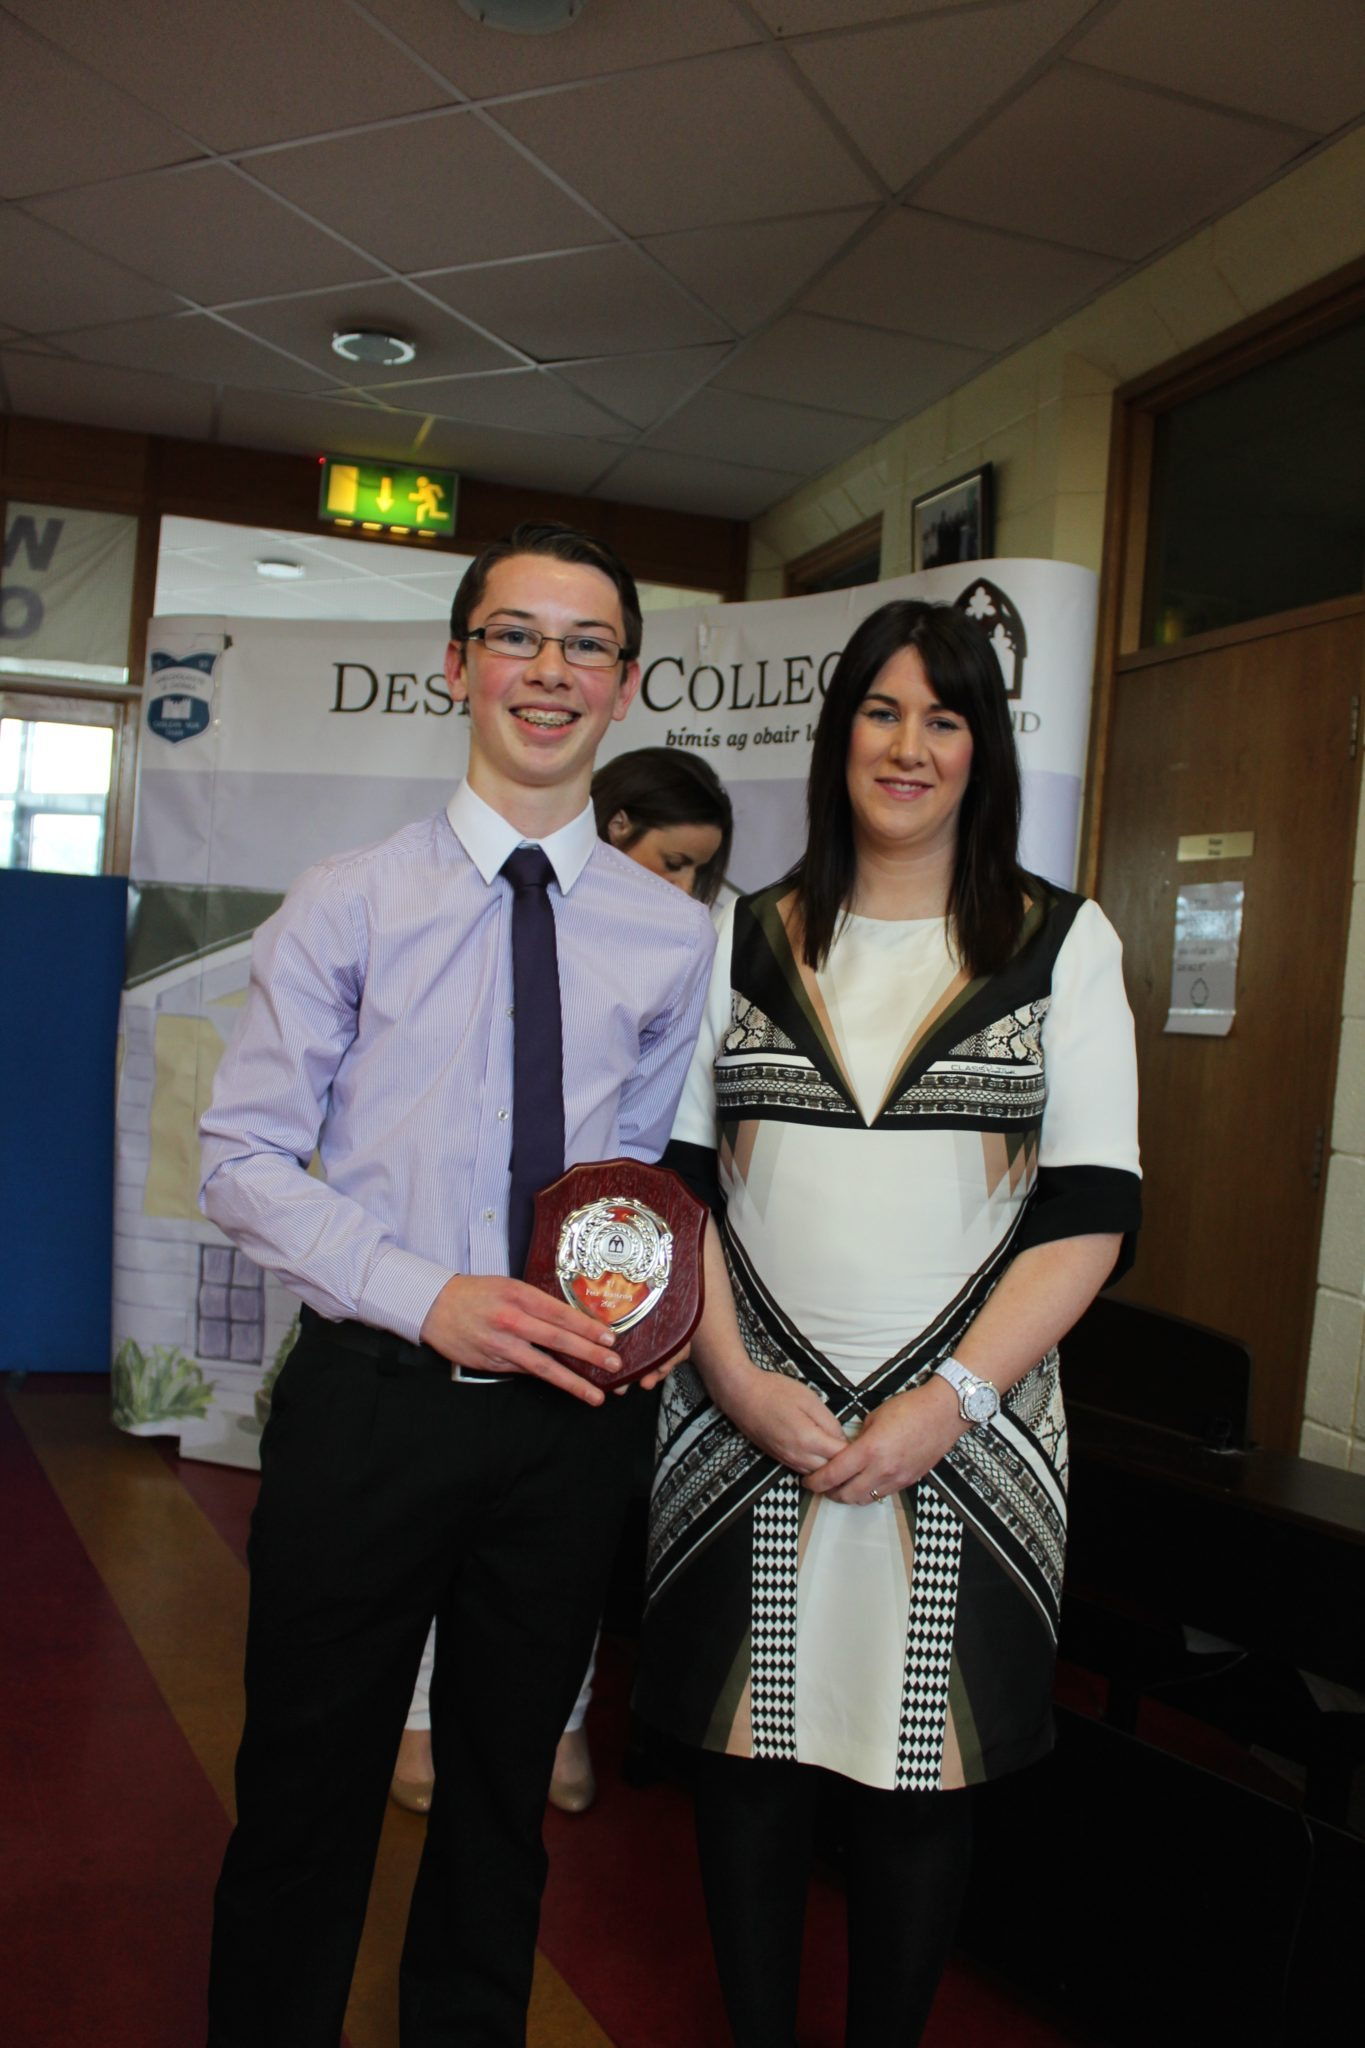 Desmond College TY Graduation 2015: Peer Mentoring Award: Cillian McMahon with Ms Guiry